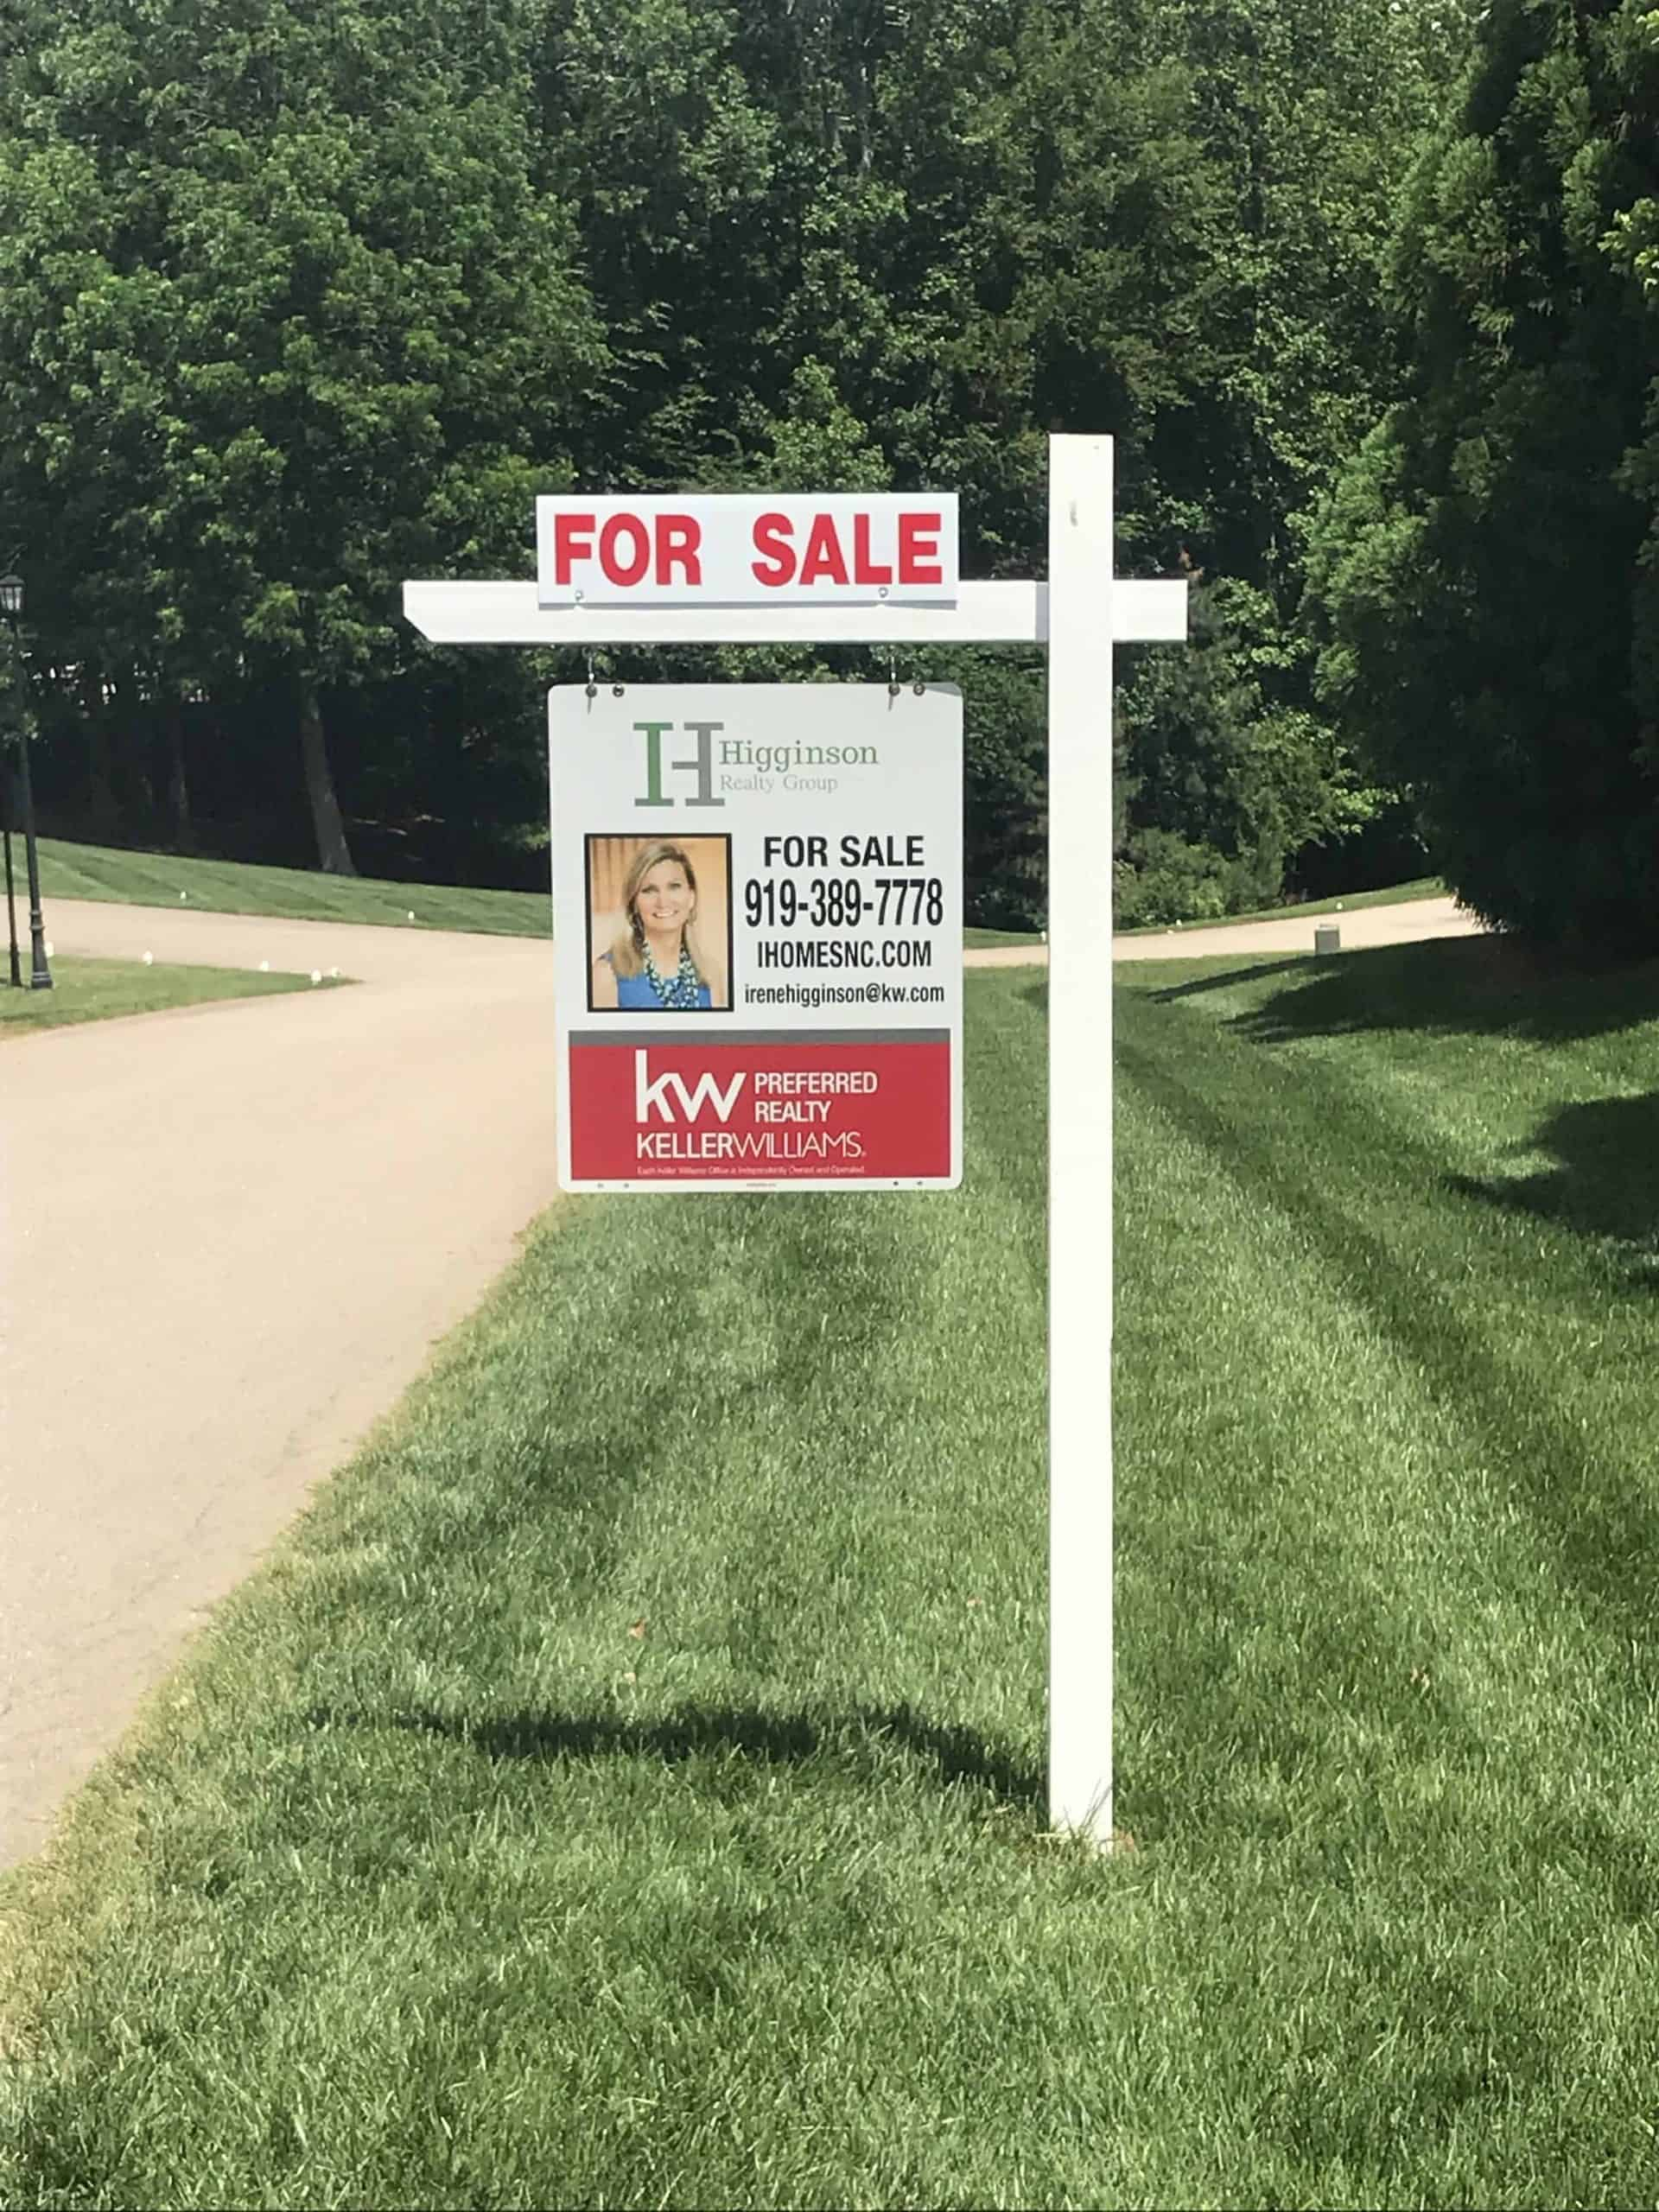 Residential Real estate sign installation